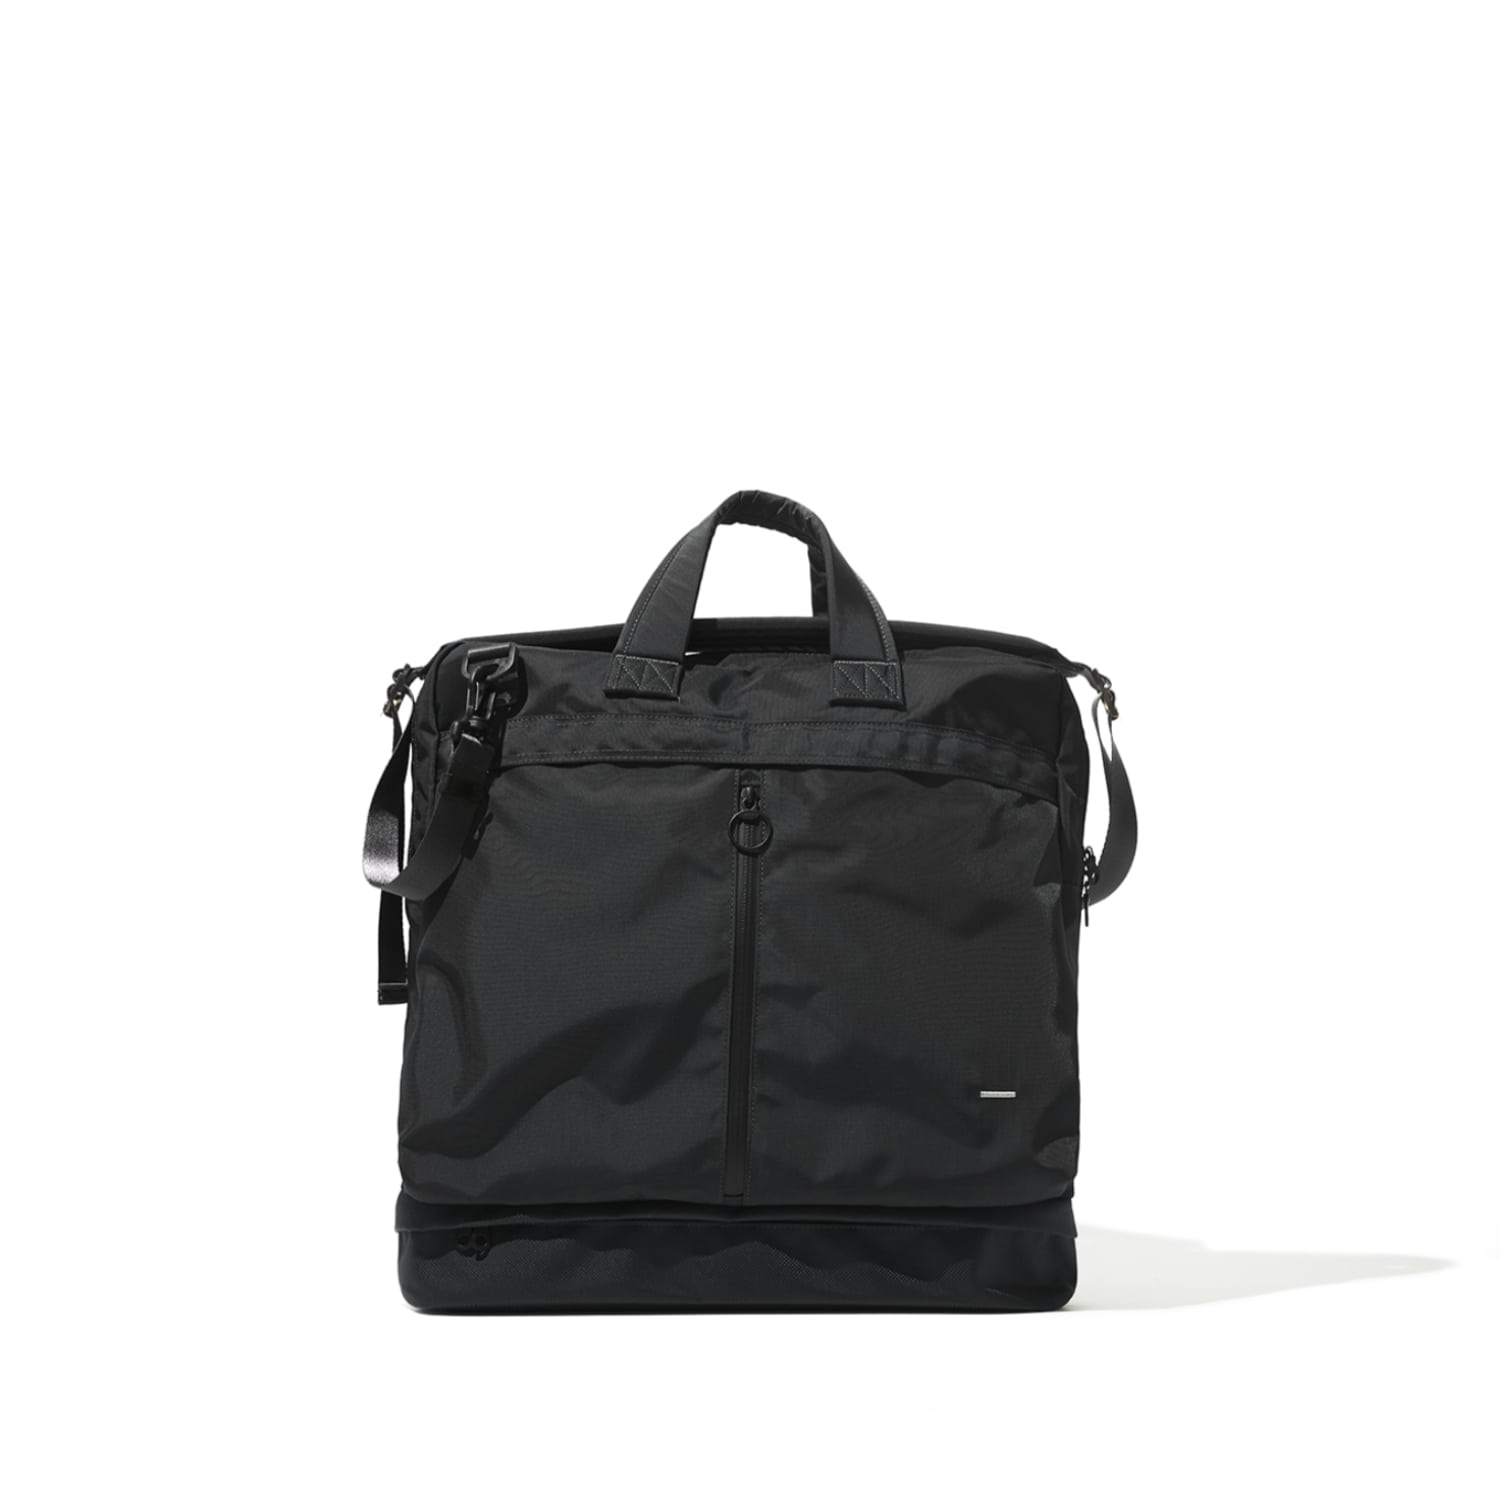 WORTHWHILE MOVEMENT월스와일 무브먼트 PCV 4 BAG (BLACK) Cordura ballistic